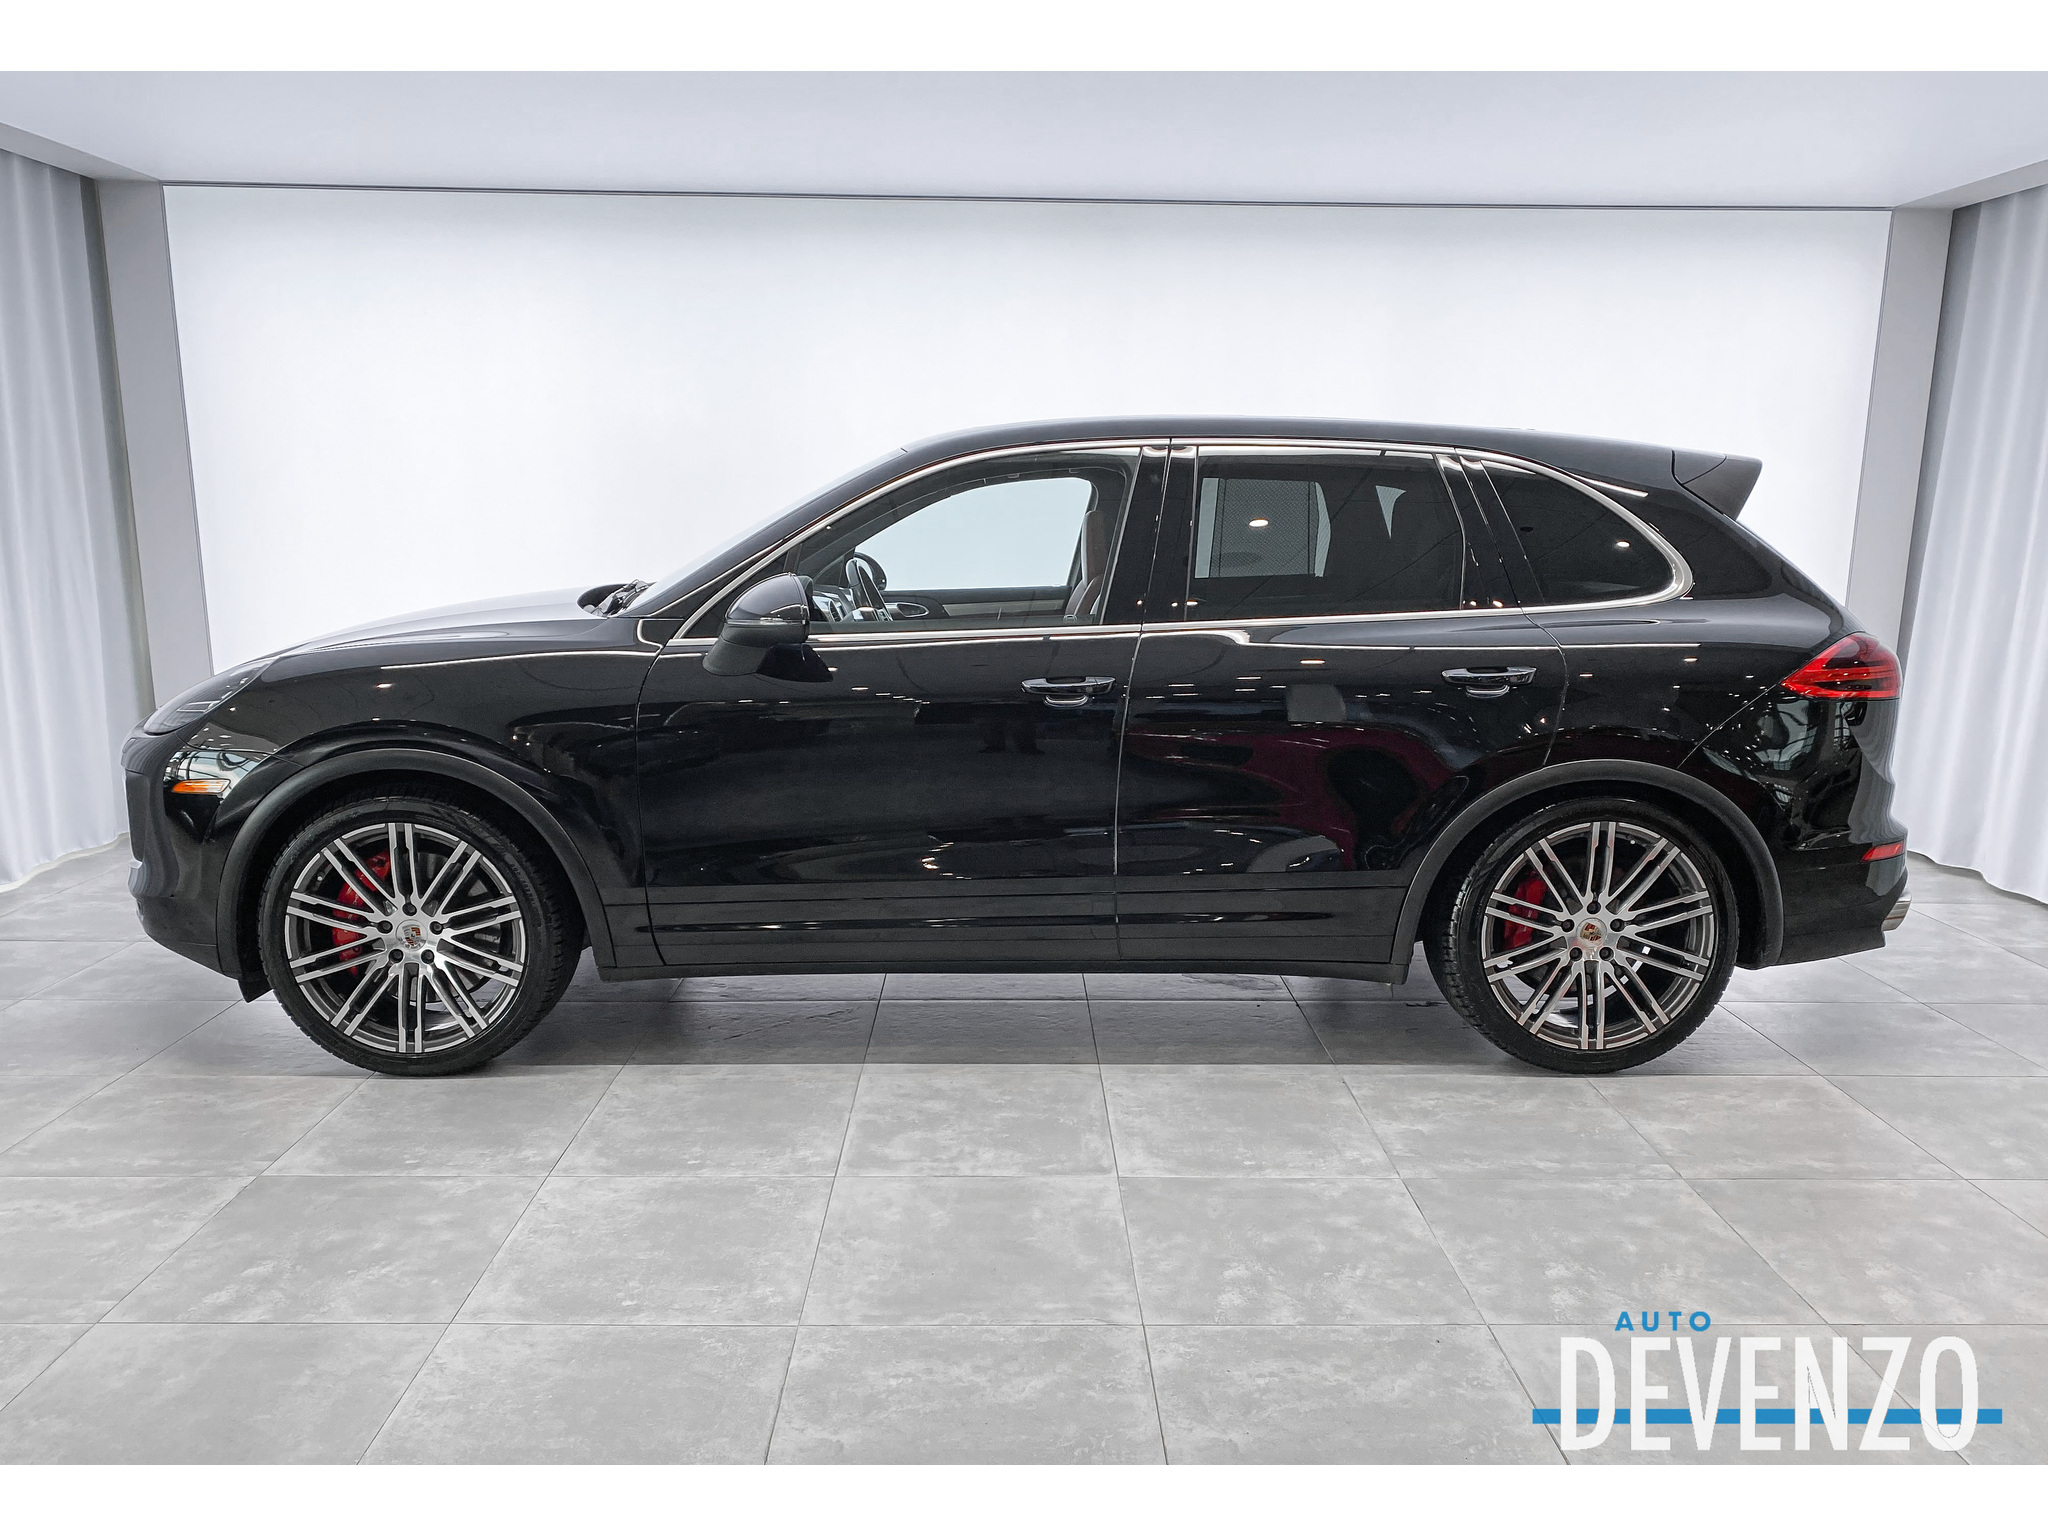 2015 Porsche Cayenne AWD TURBO 520HP complet